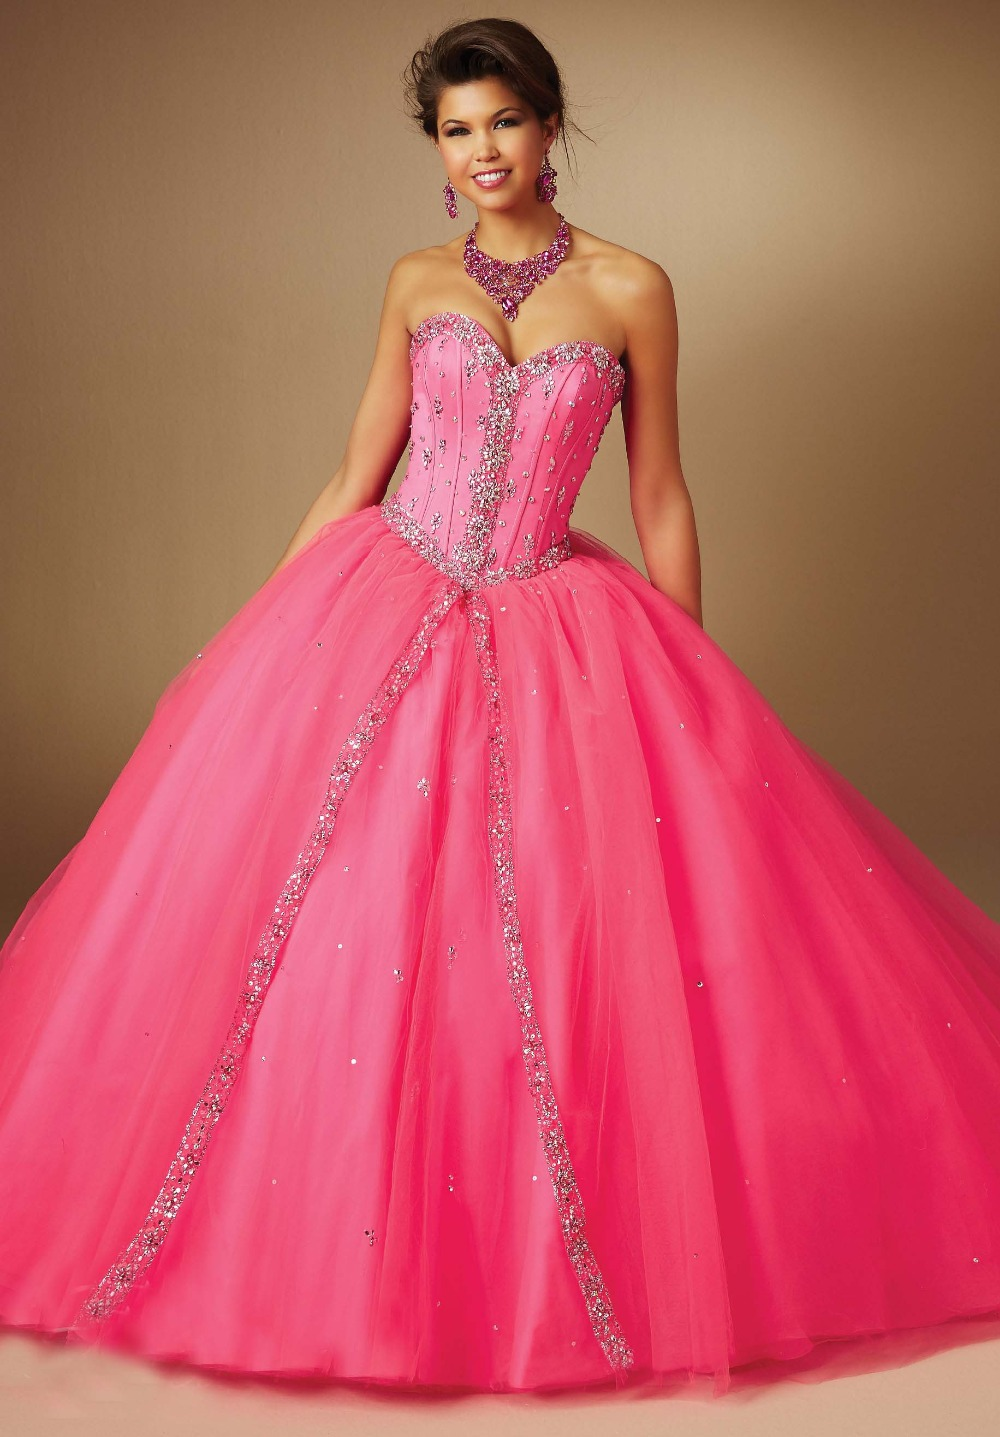 Quince Dresses 2015